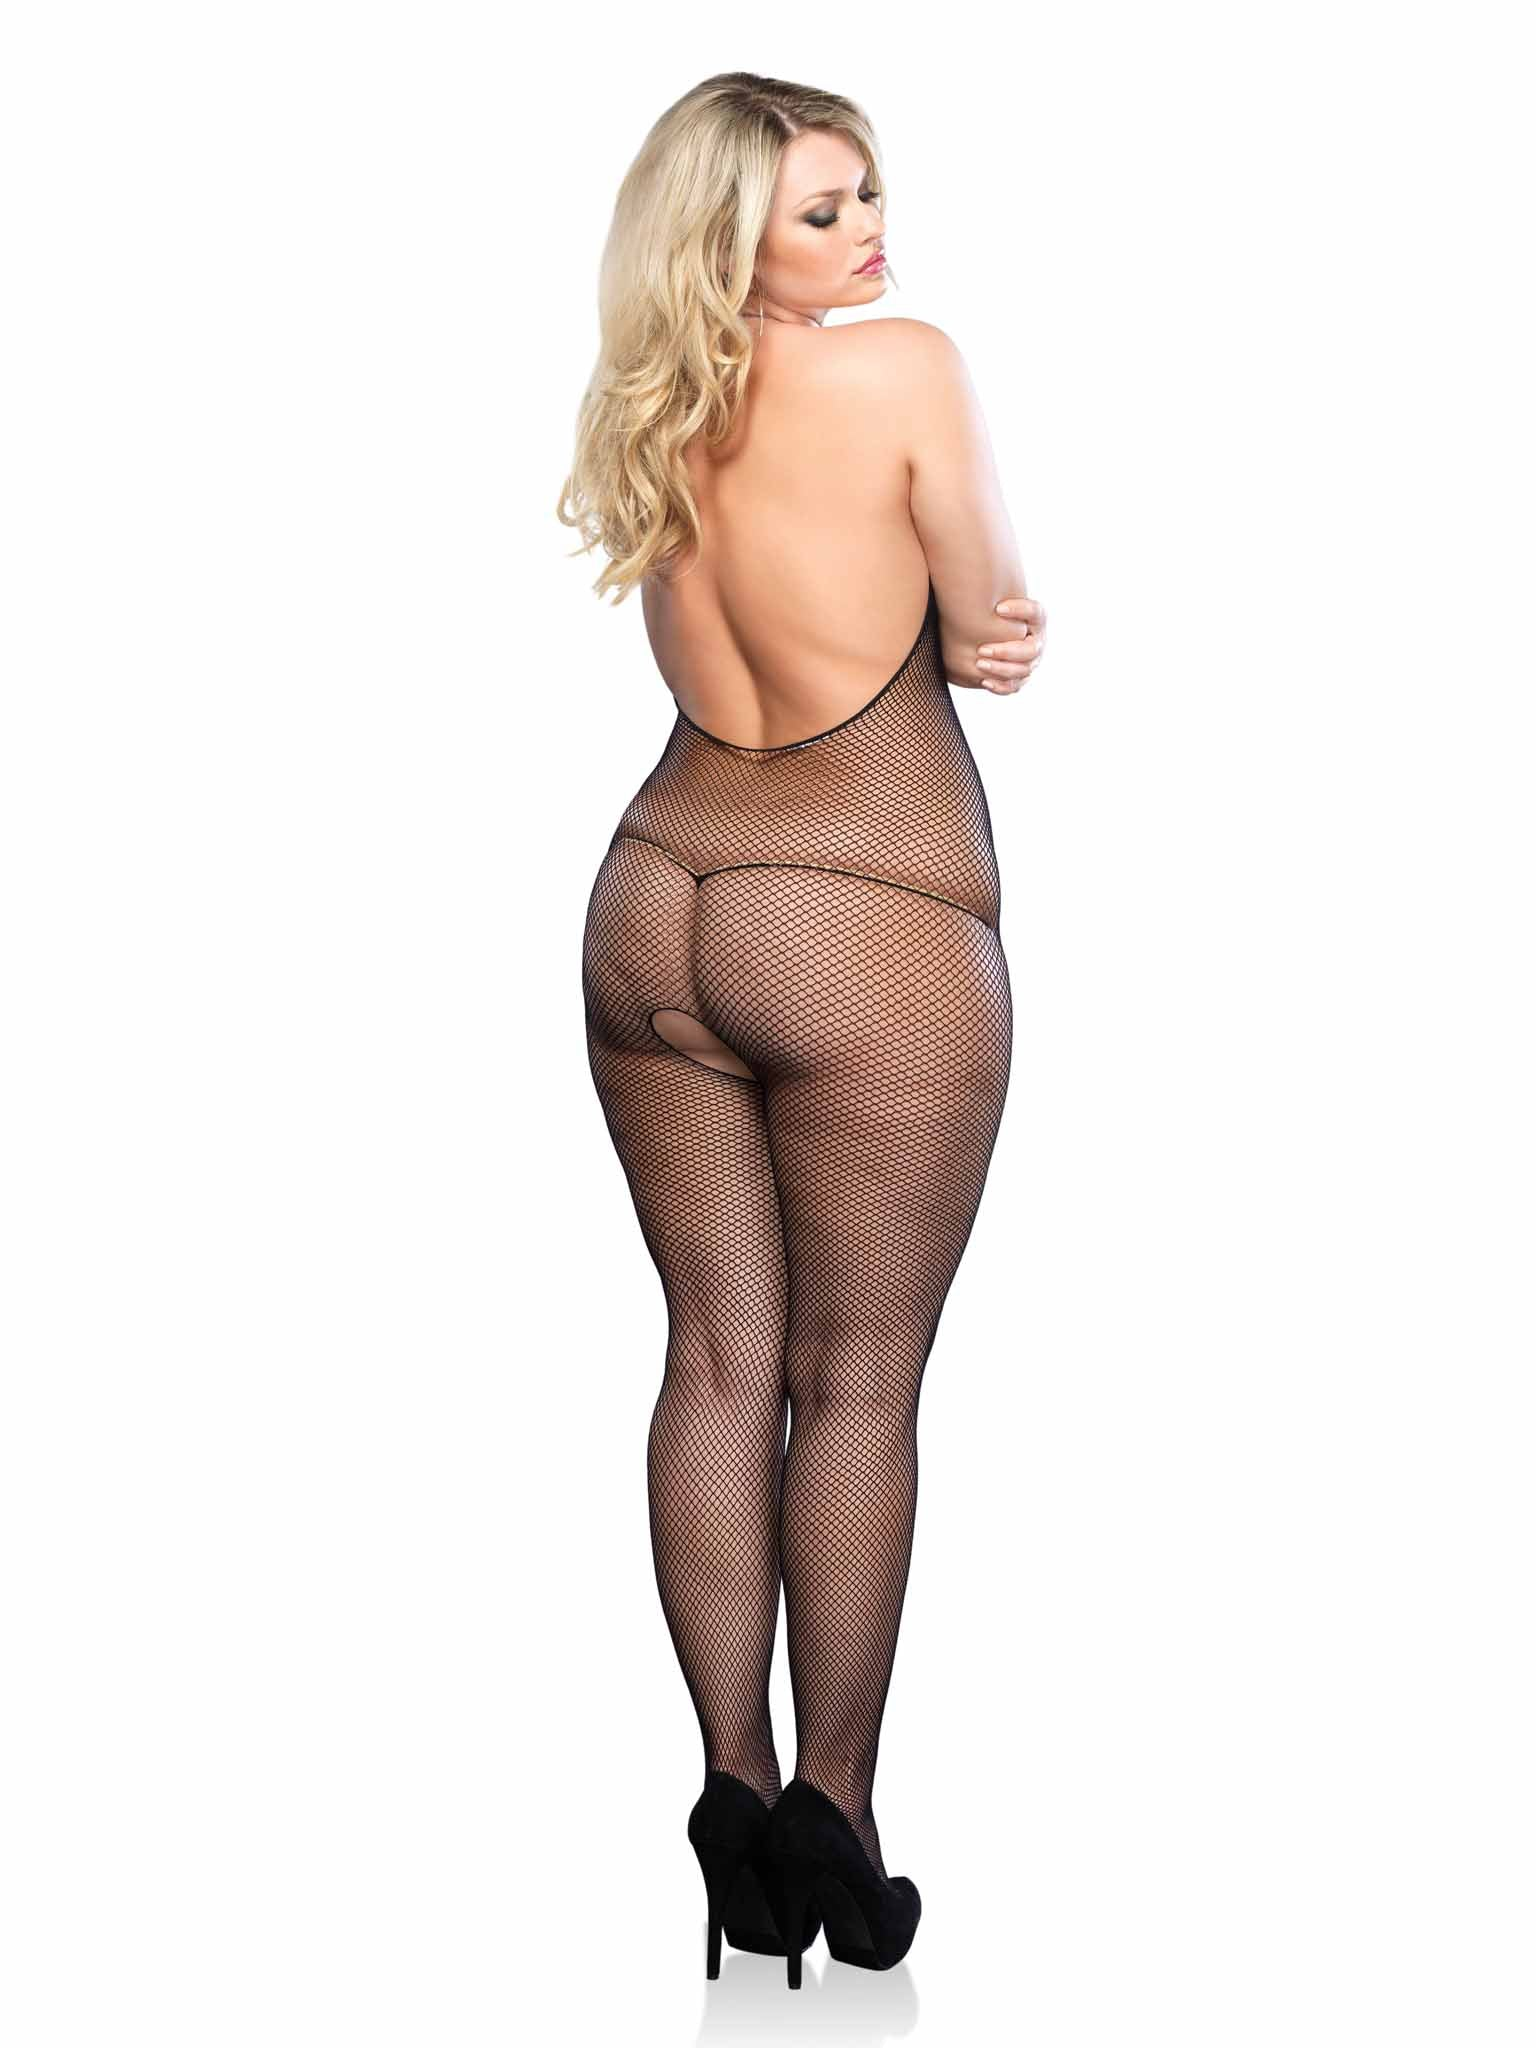 FISHNET CUPLESS BODYSTOCKING